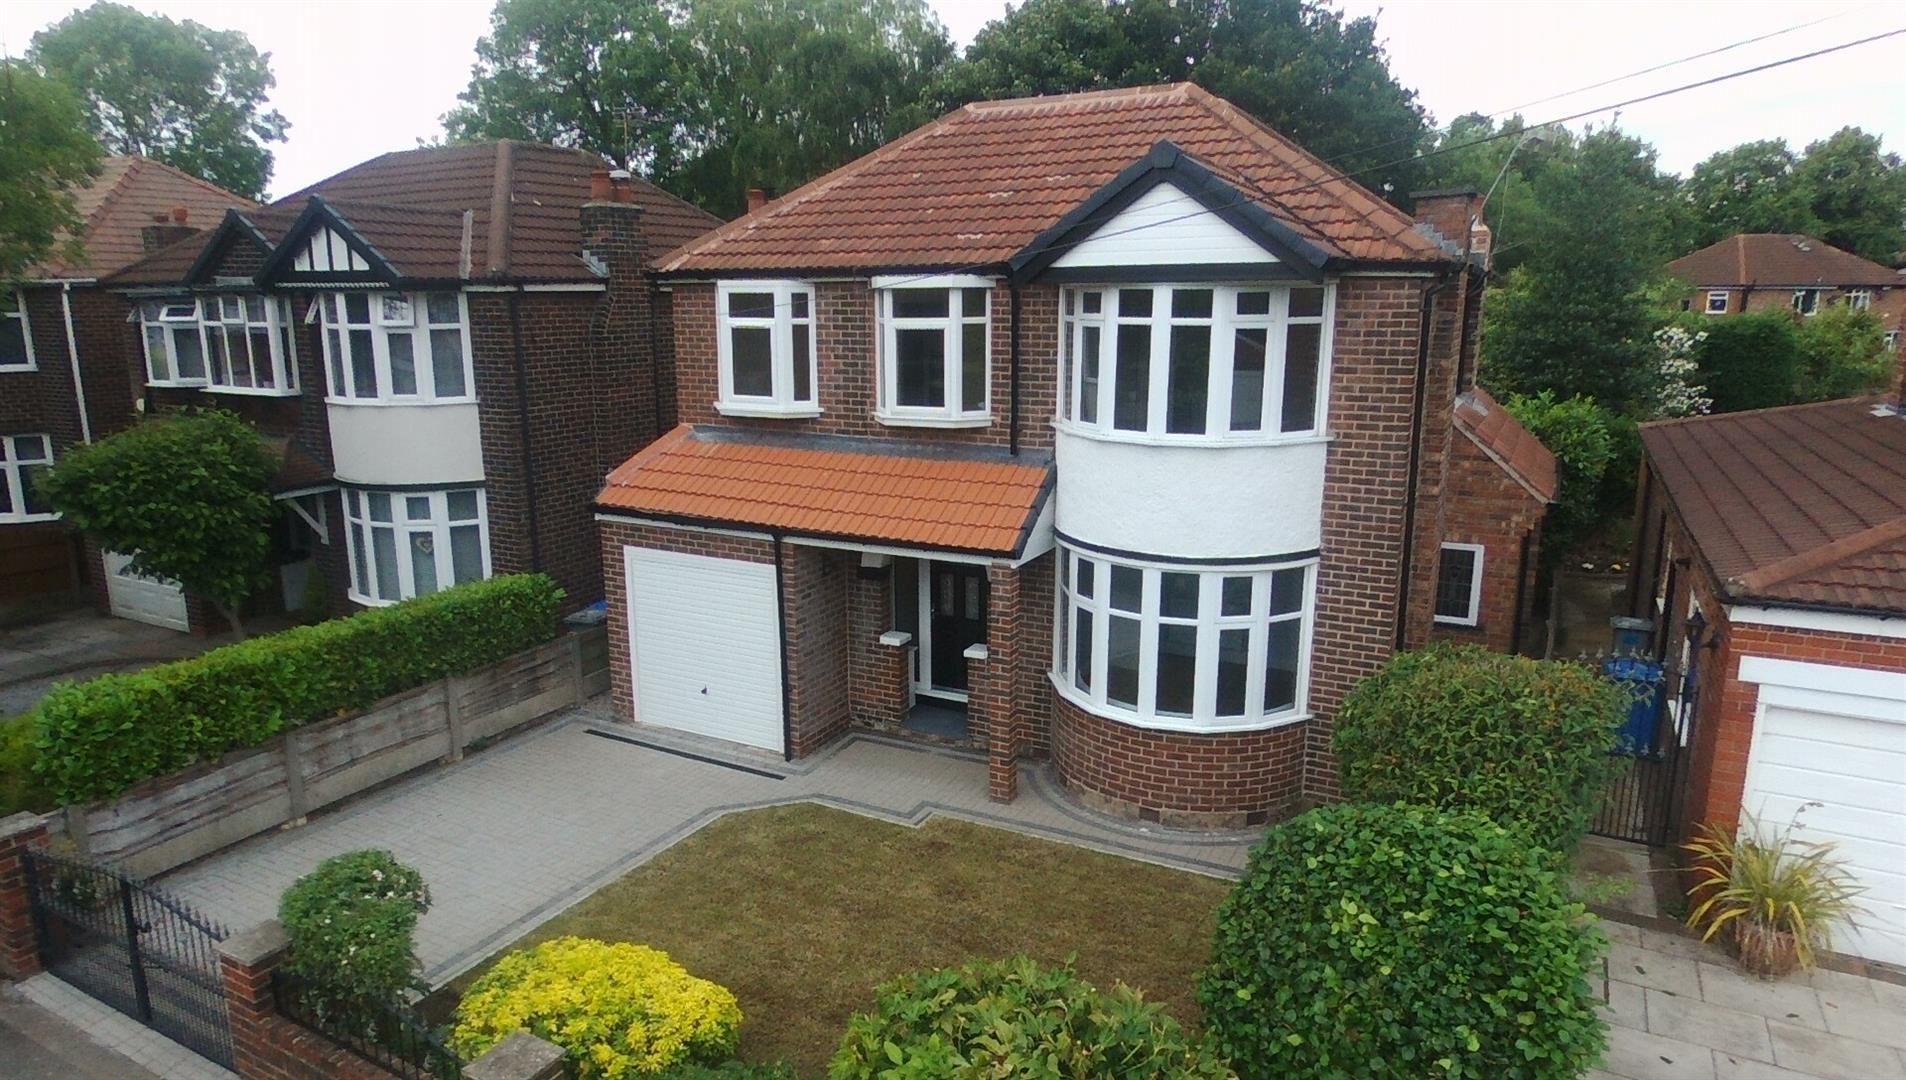 4 Bedroom House - Detached To Let